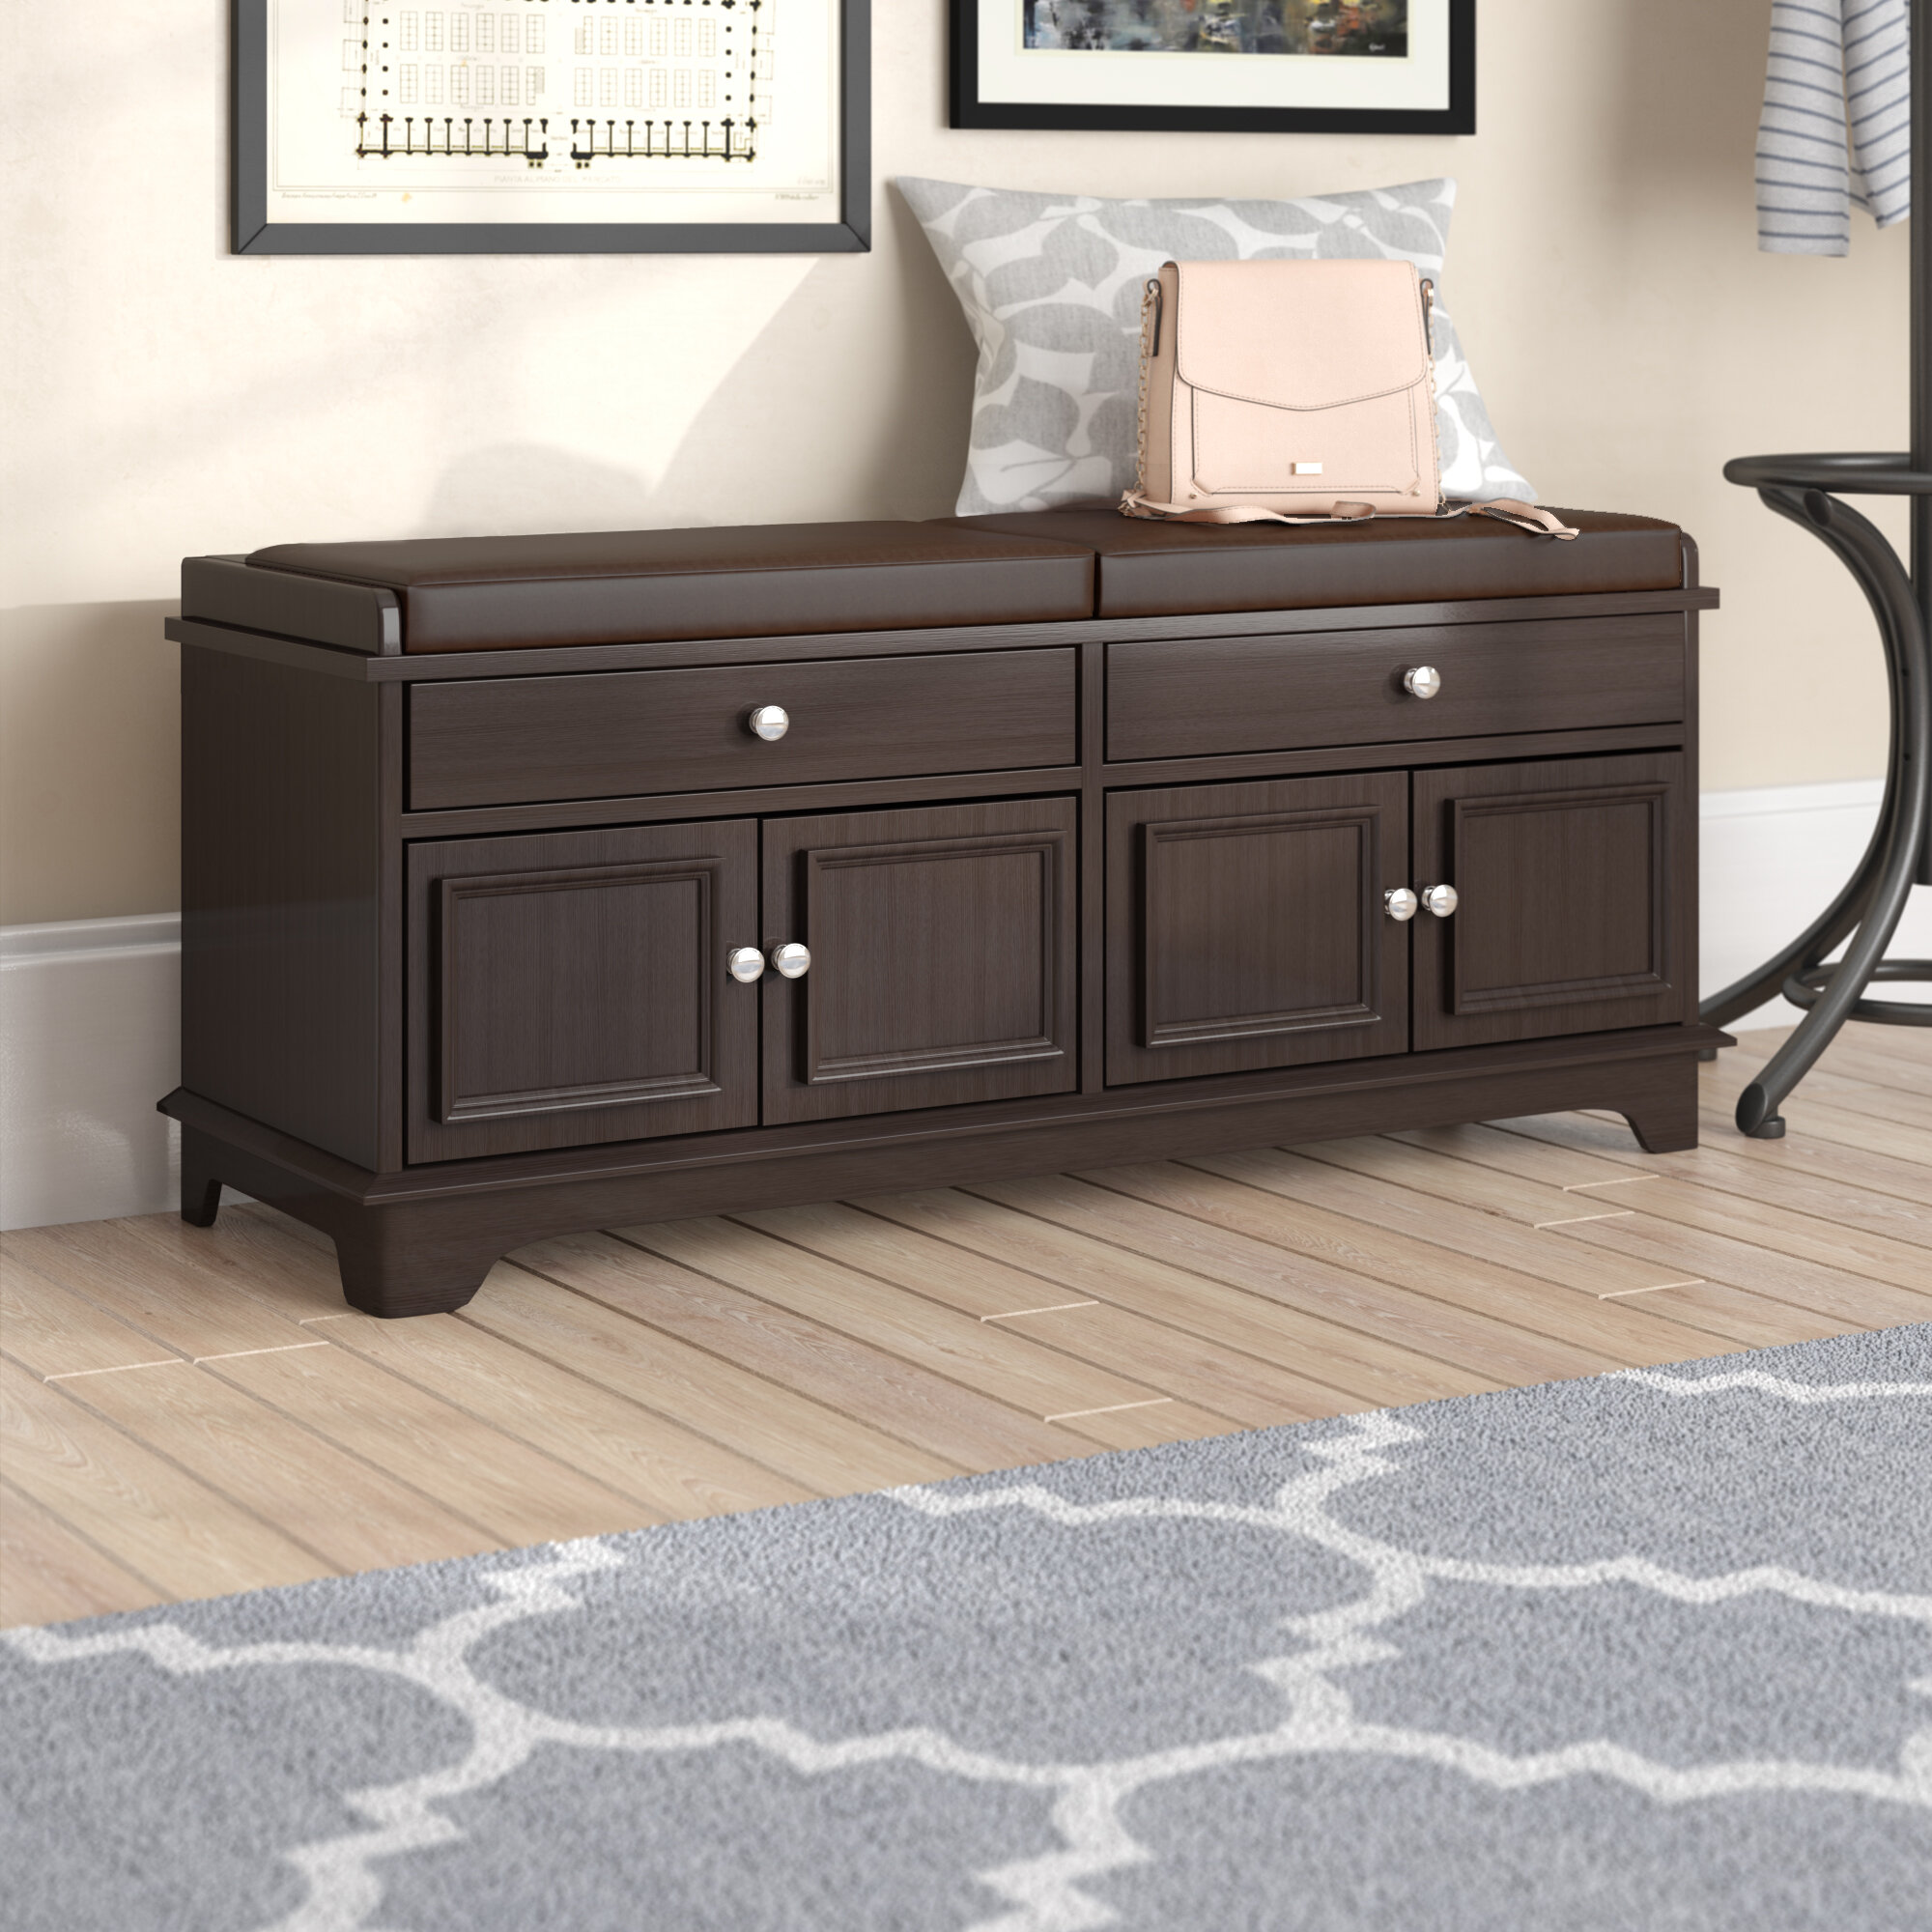 Brilliant Charlton Home Penbrook Upholstered Storage Bench Reviews Pdpeps Interior Chair Design Pdpepsorg